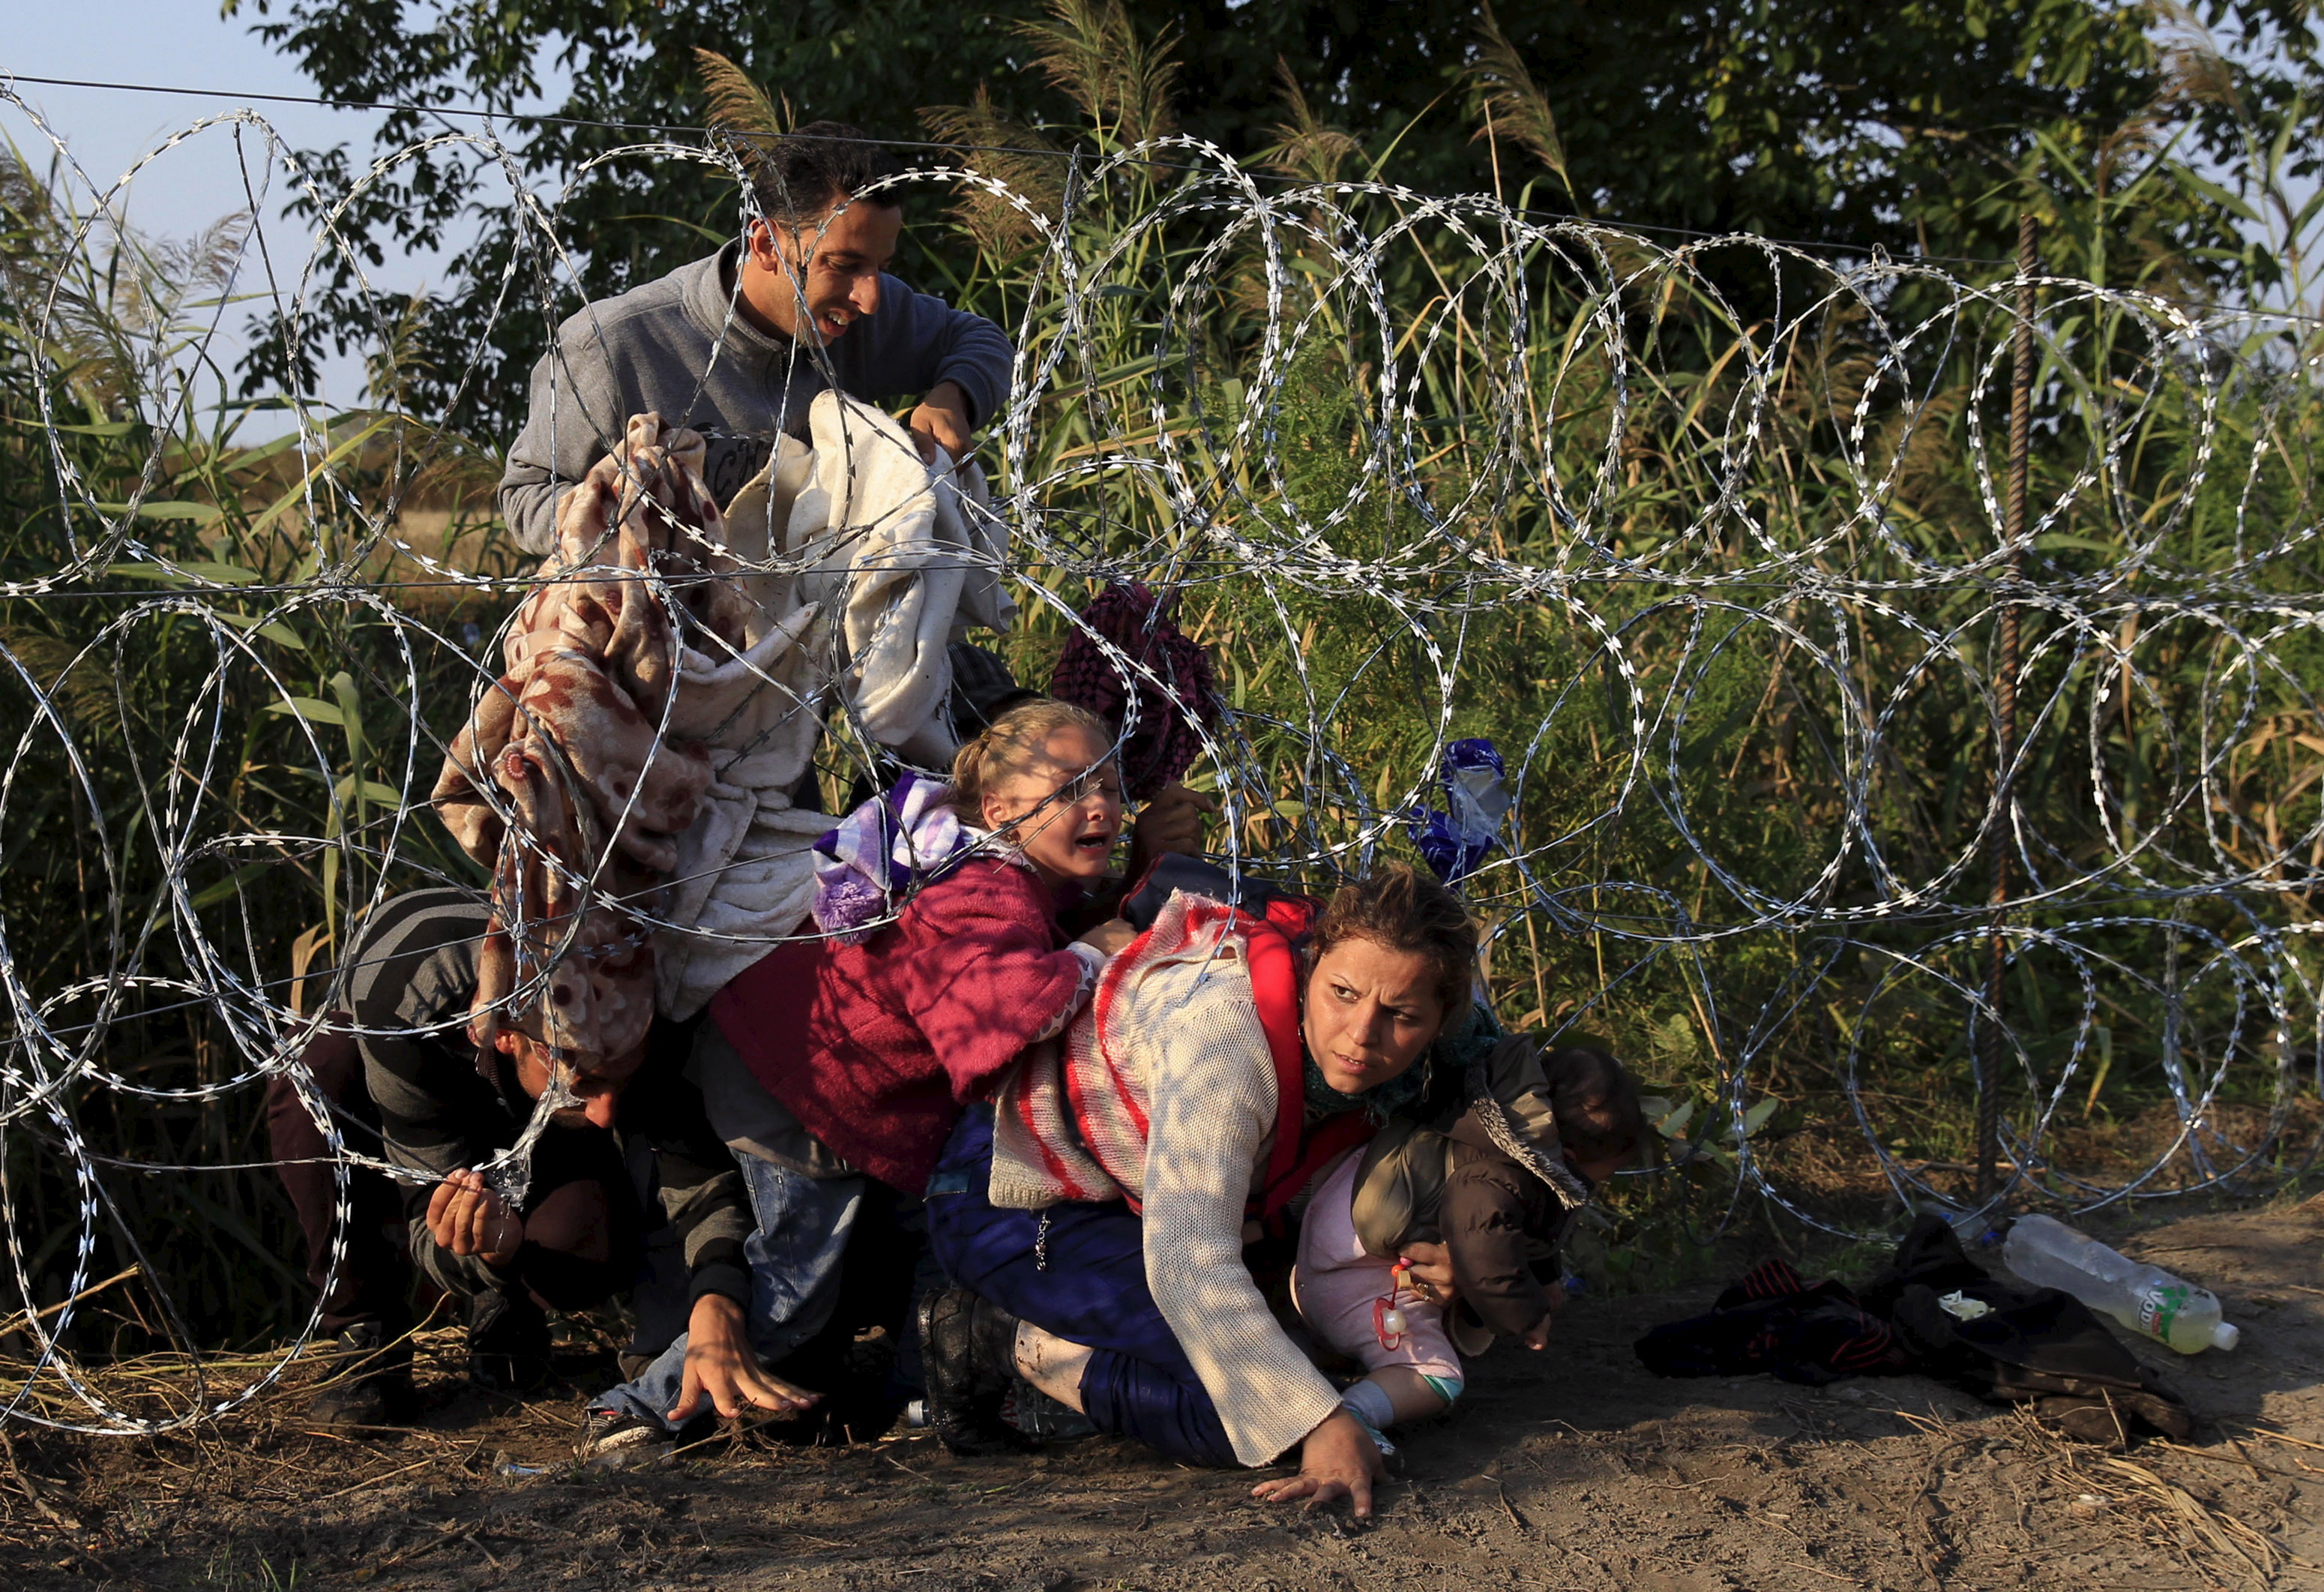 Seeking solutions to the migrant crisis Current Affairs